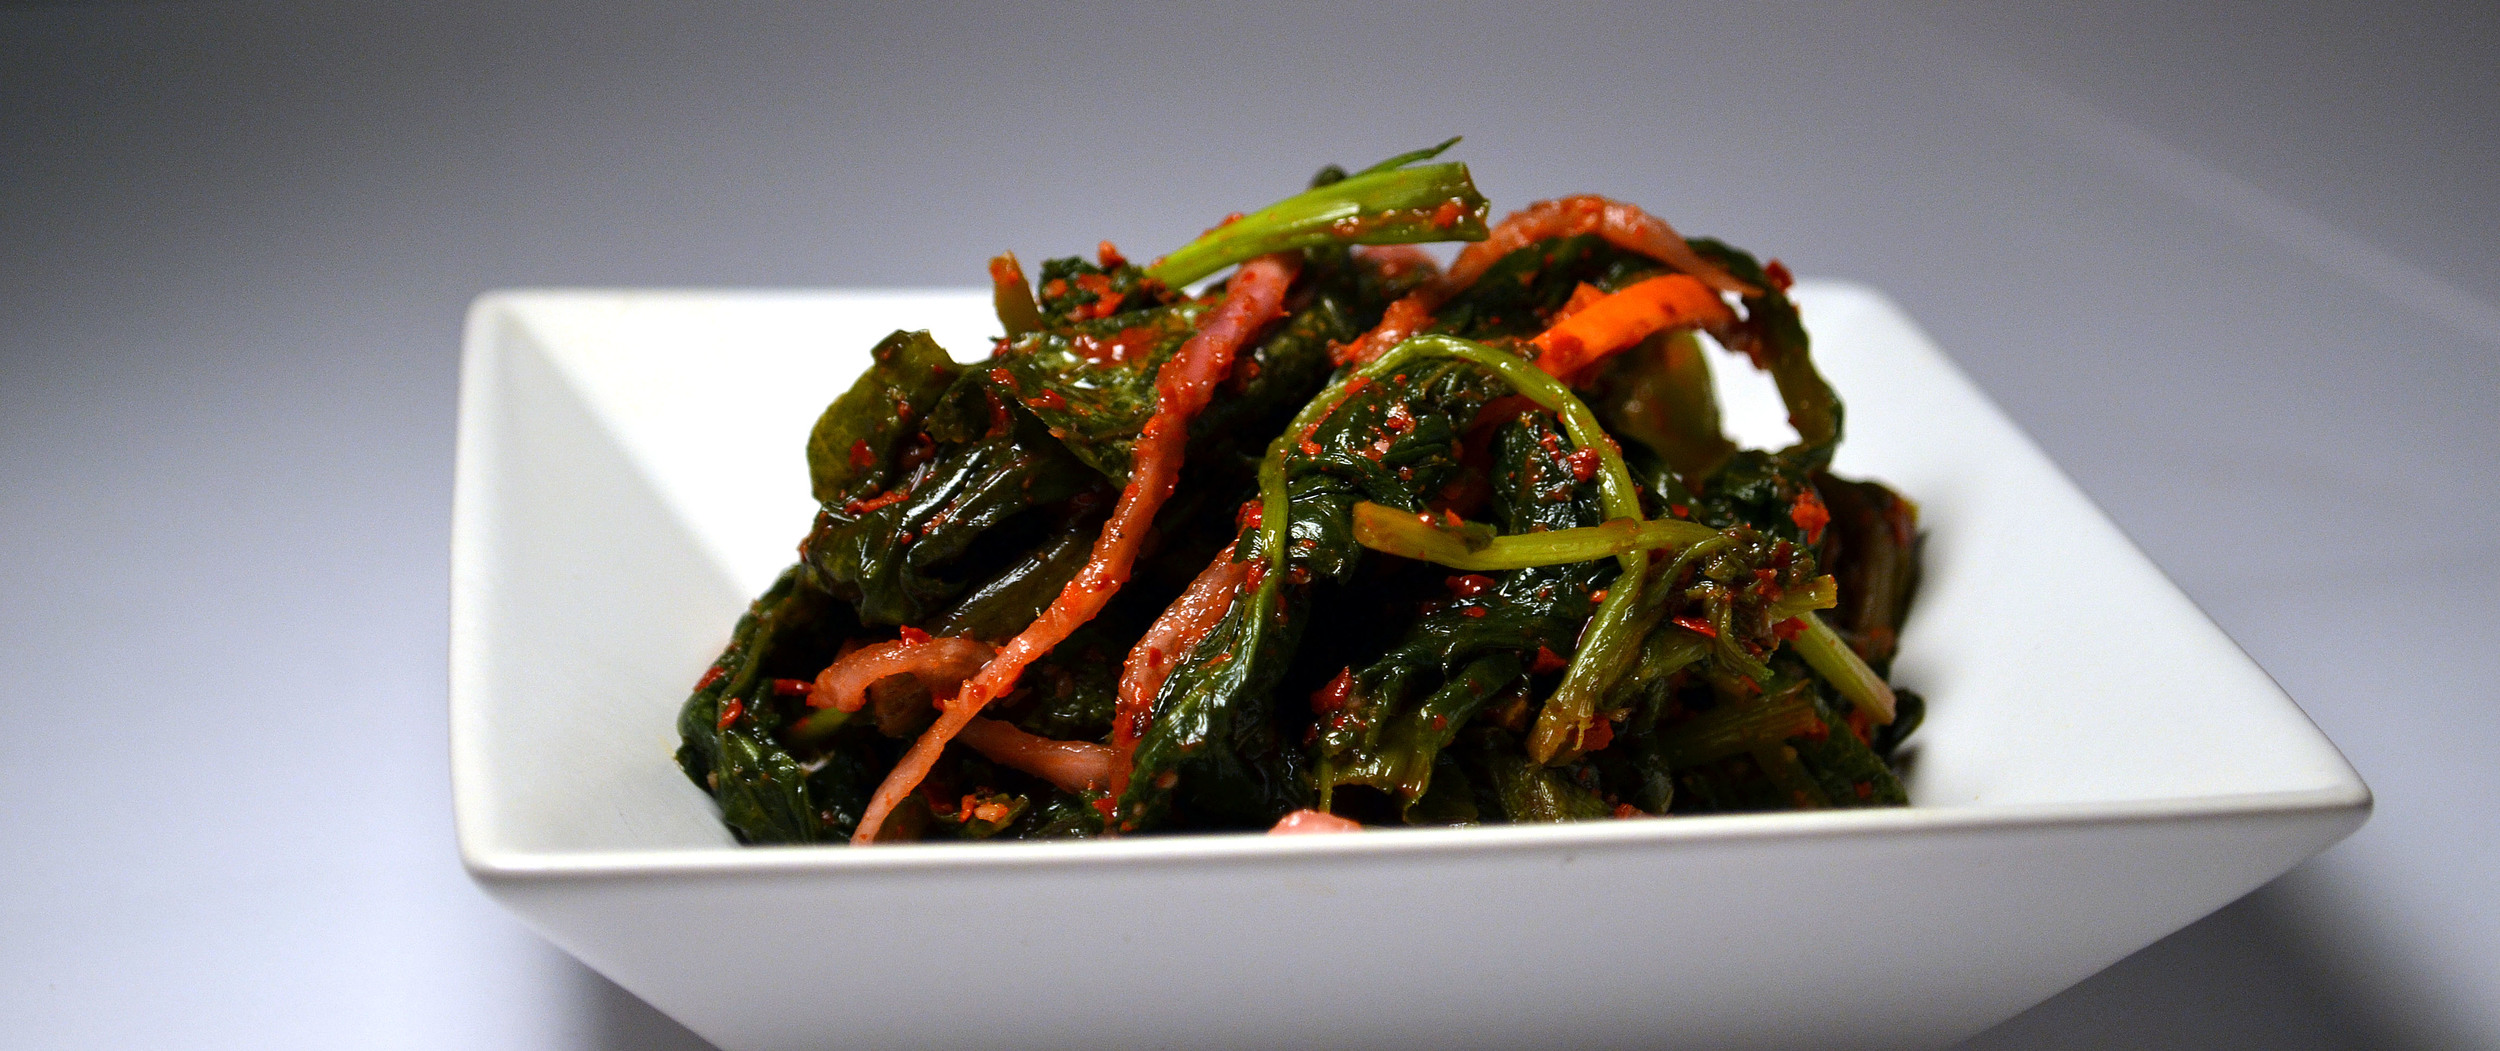 MUSTARD LEAF:The exotic taste of the Mustard Leaf and the spicy tangy fermentation process makes this Kimchi quite exquisite. It's hard to say no to the taste and the health benefits such as detoxification, cancer prevention, high in antioxidants.